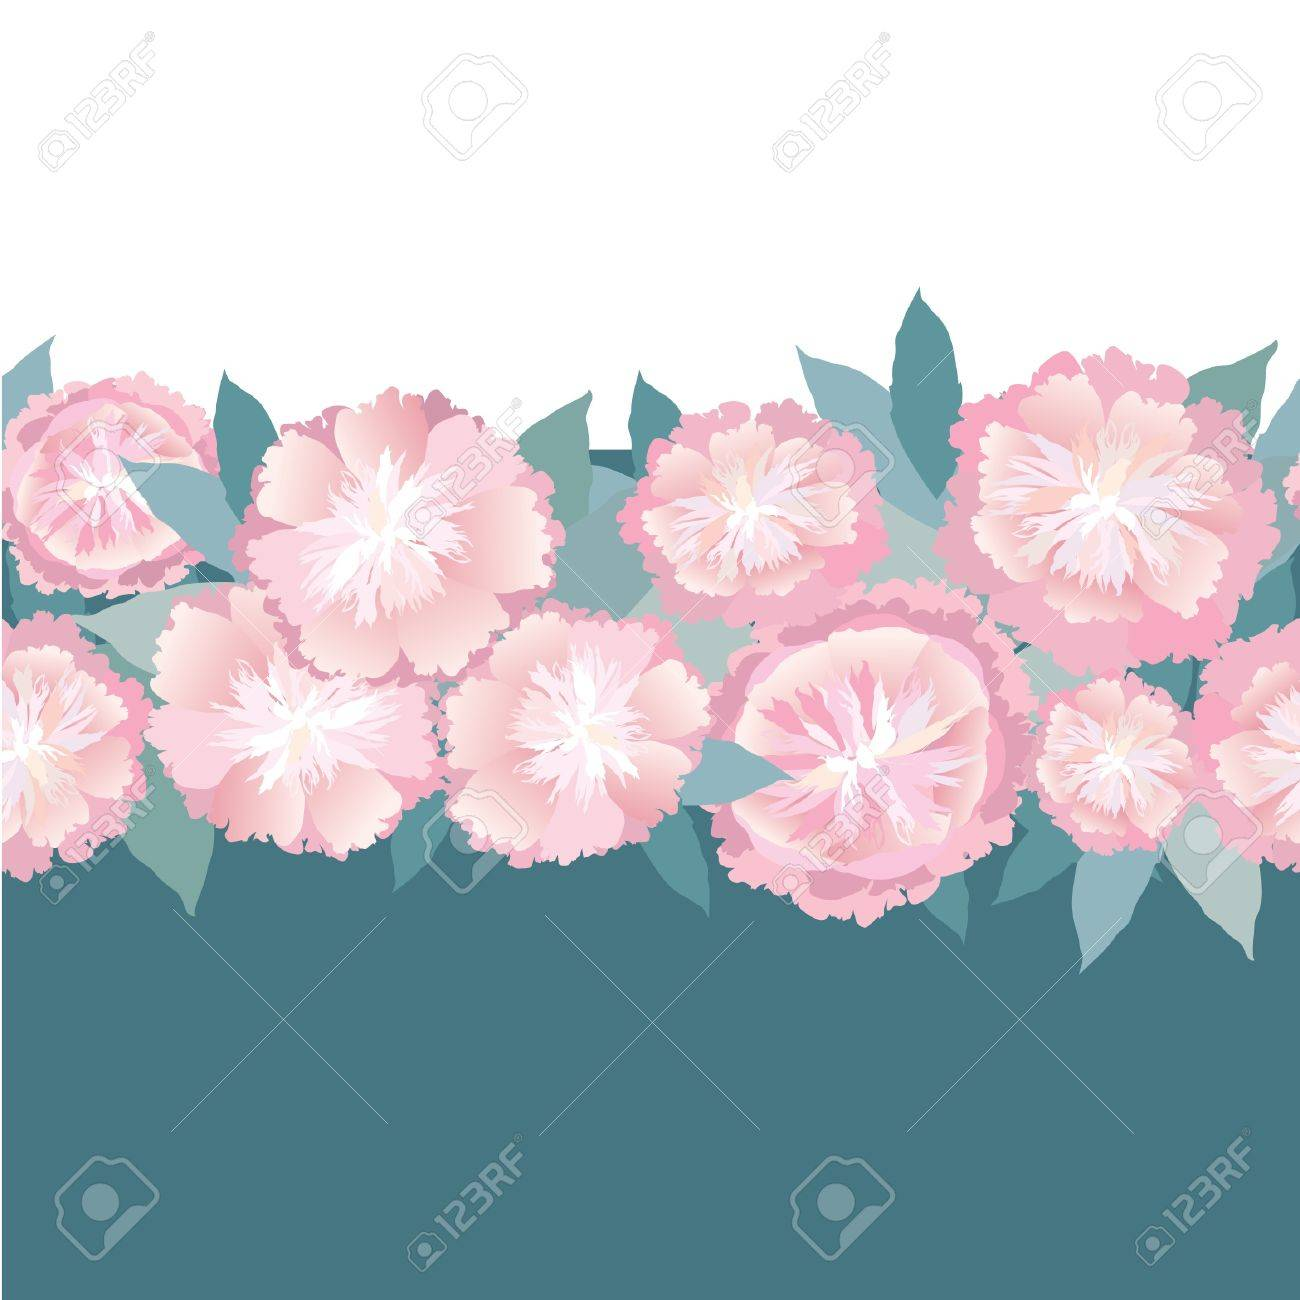 Floral seamless border pink flower garland background royalty free floral seamless border pink flower garland background stock vector 16140040 mightylinksfo